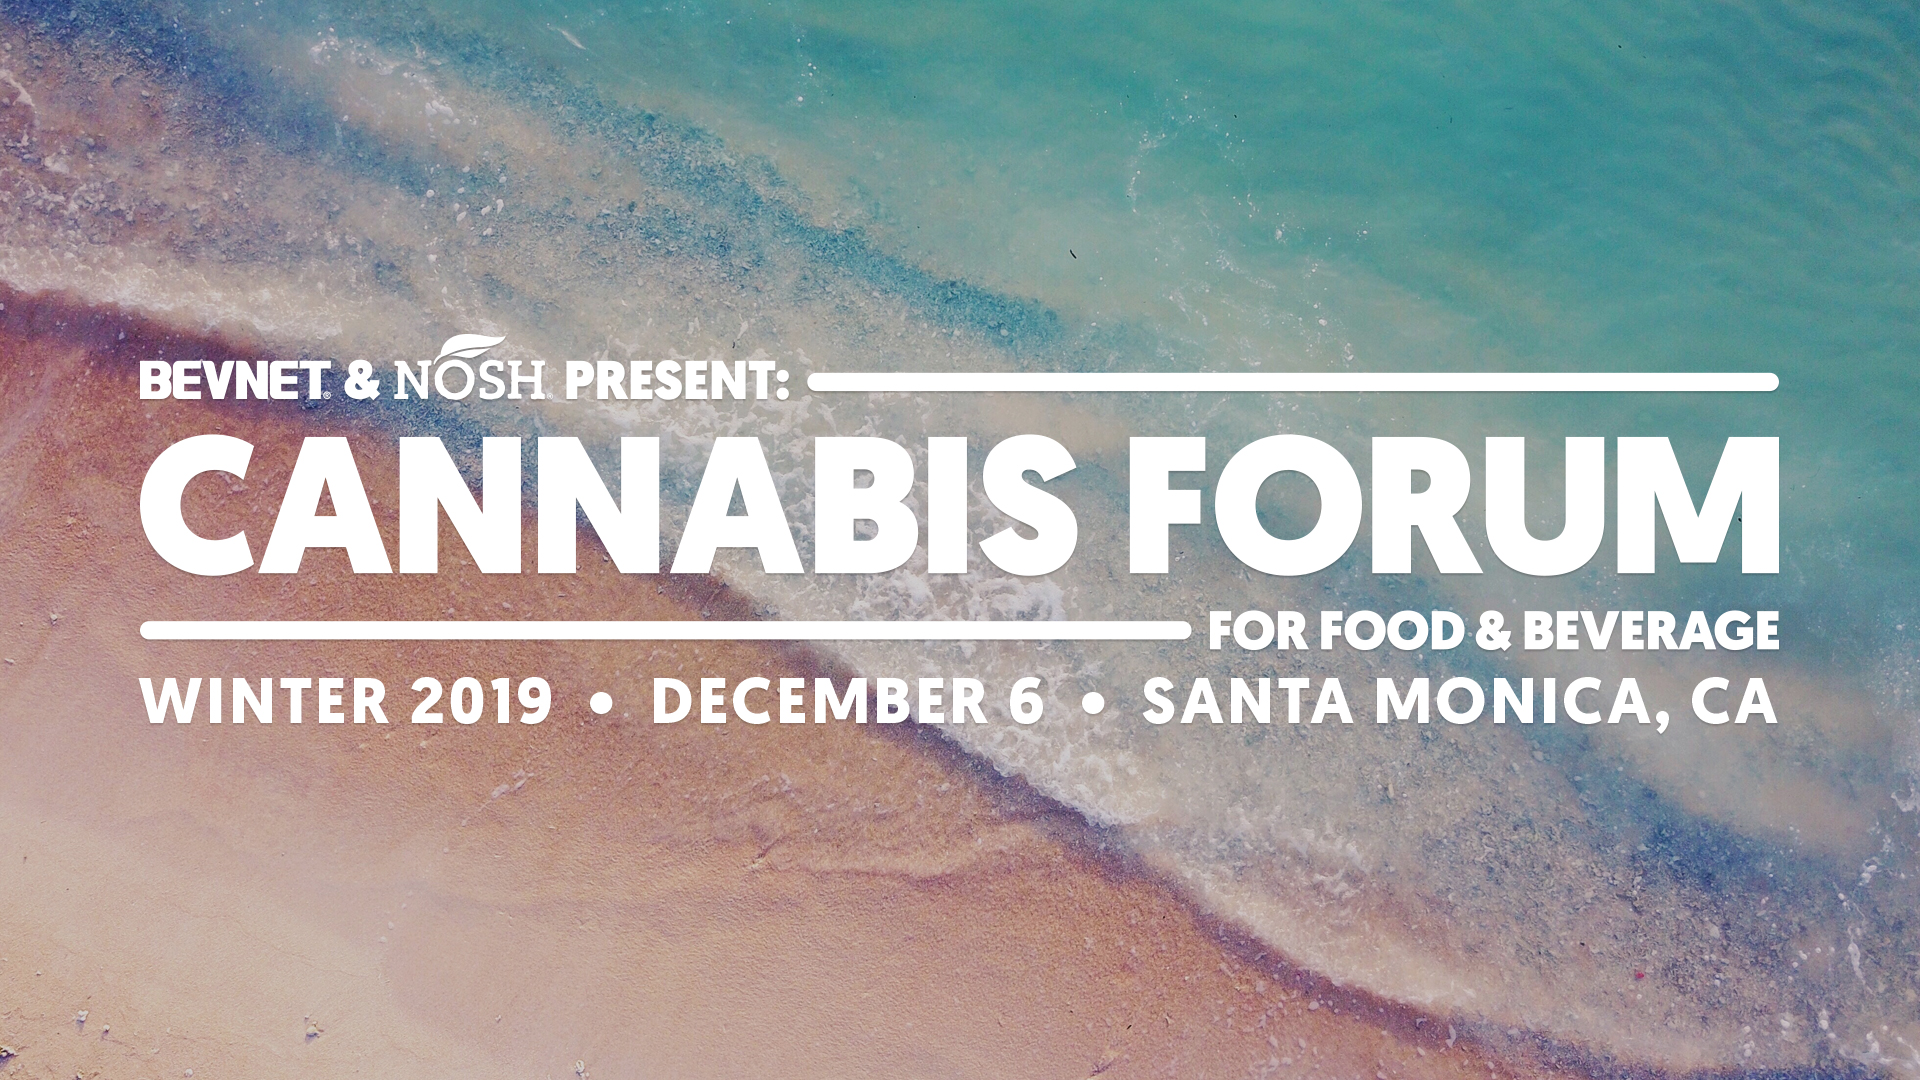 Cannabis Forum Winter 2019